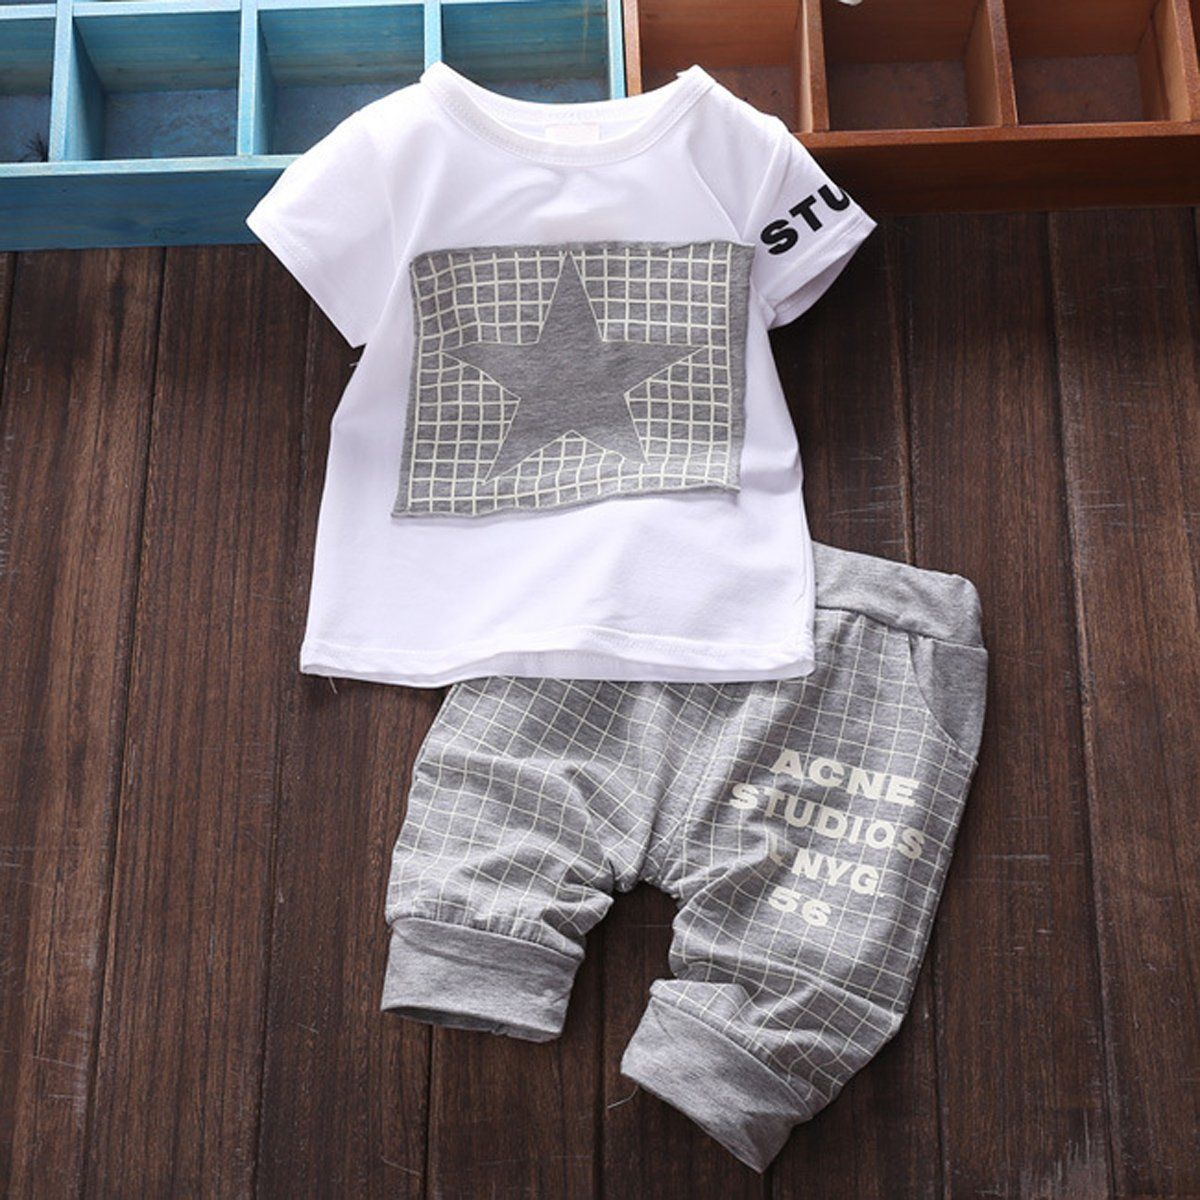 5a631cc0f  9.39 - 2Pcs Cottonborn Baby Infant Boy Clothes Sets T-Shirt Top+ ...